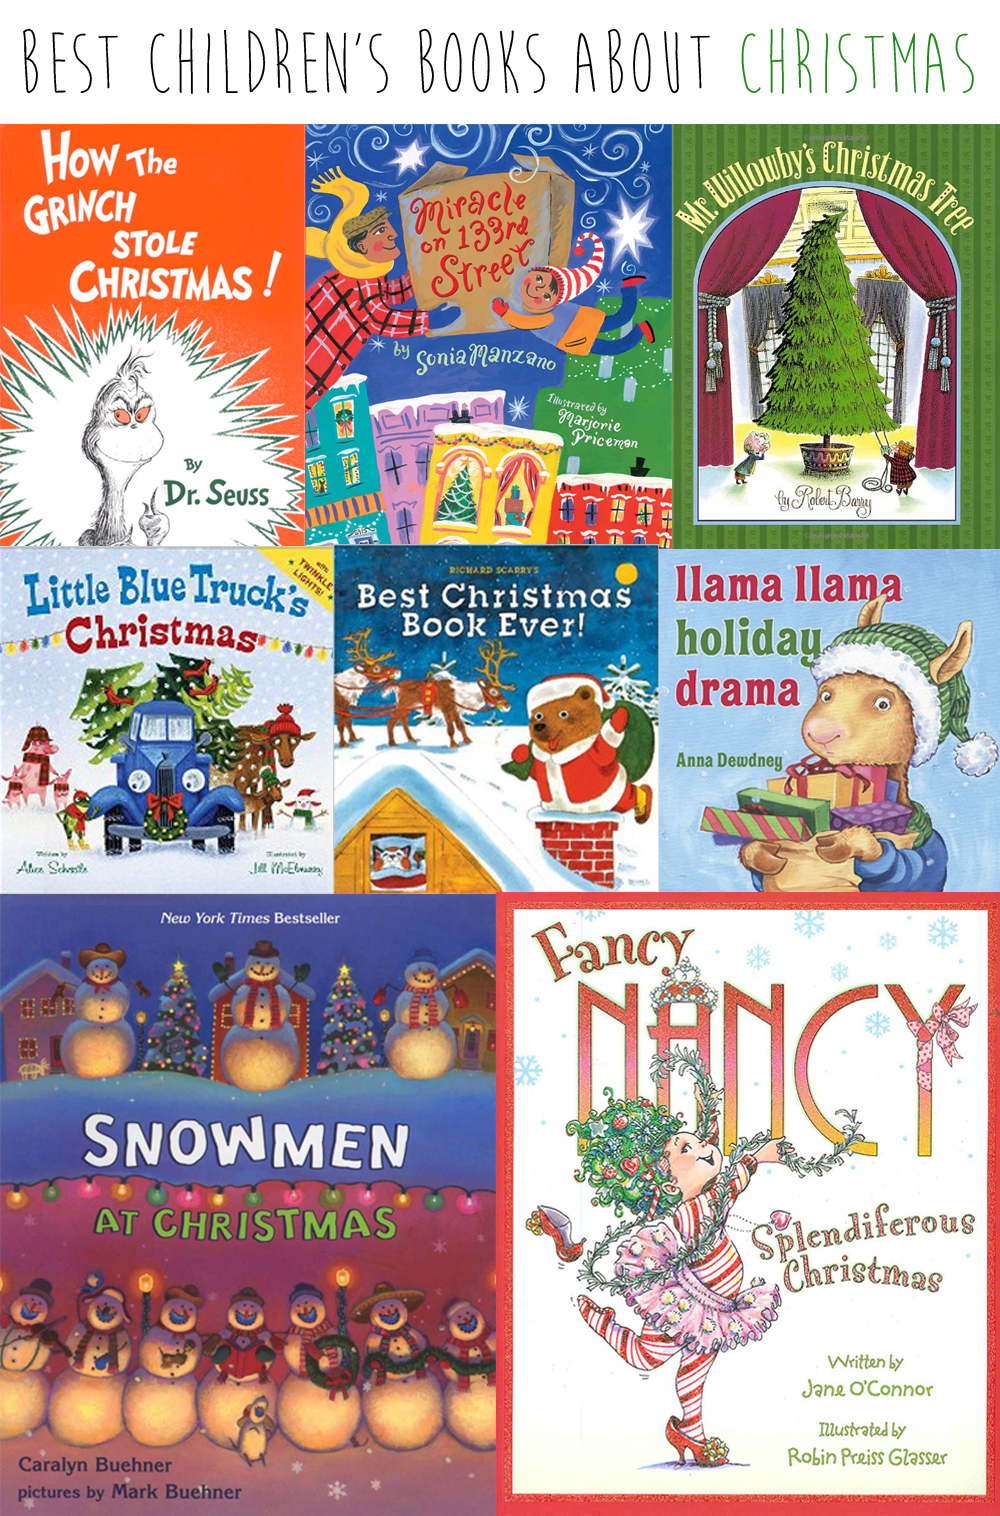 best childrens books about christmas - Best Christmas Books